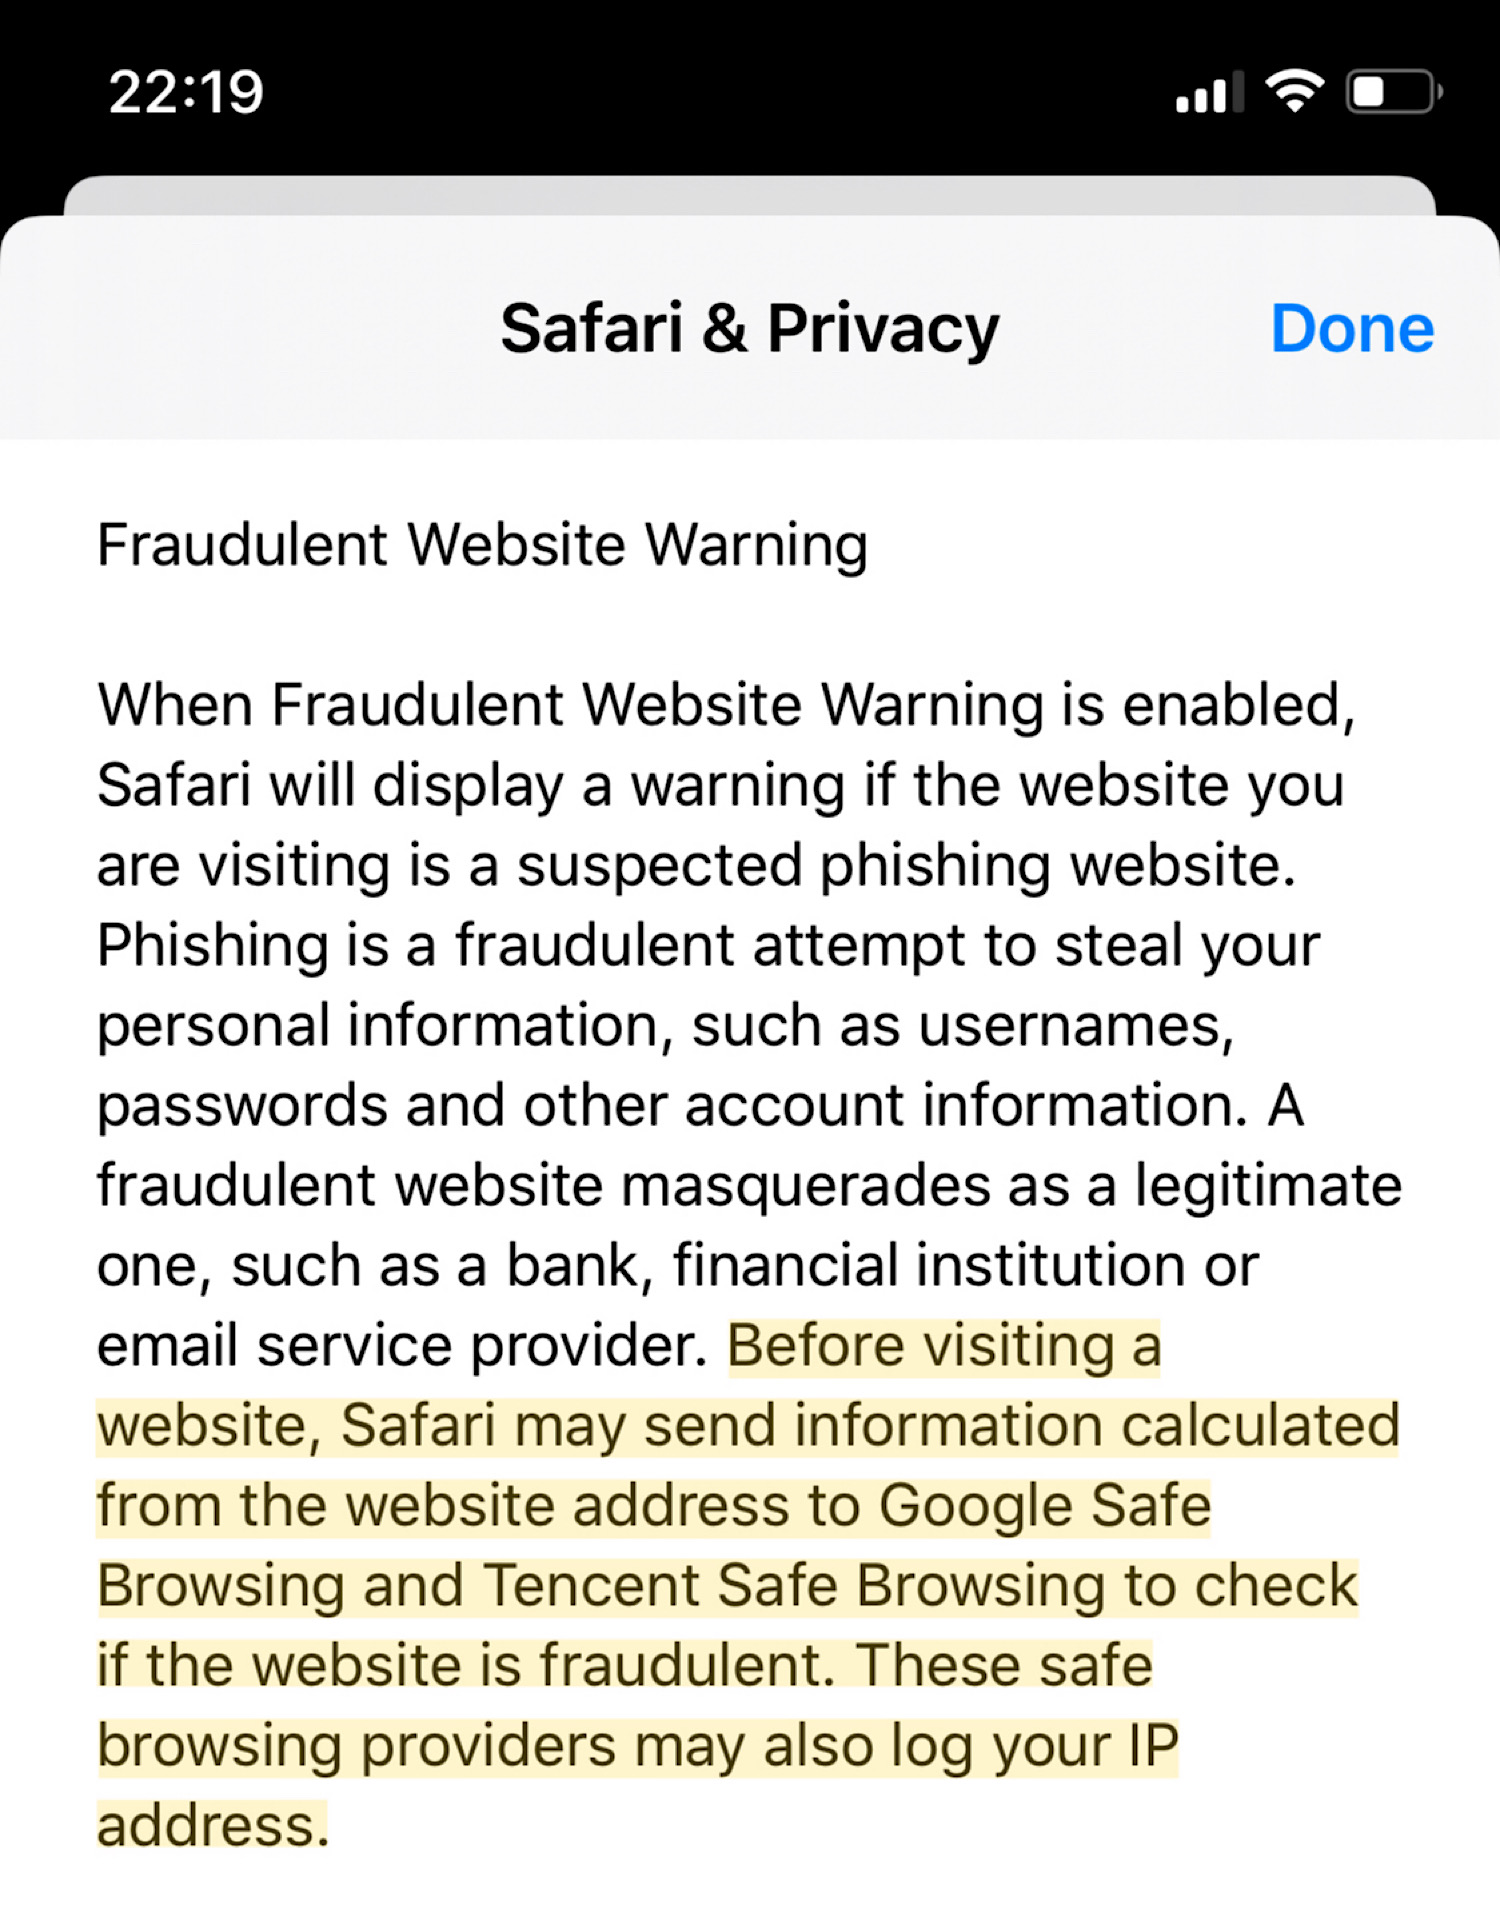 How safe is Apple's Safe Browsing?